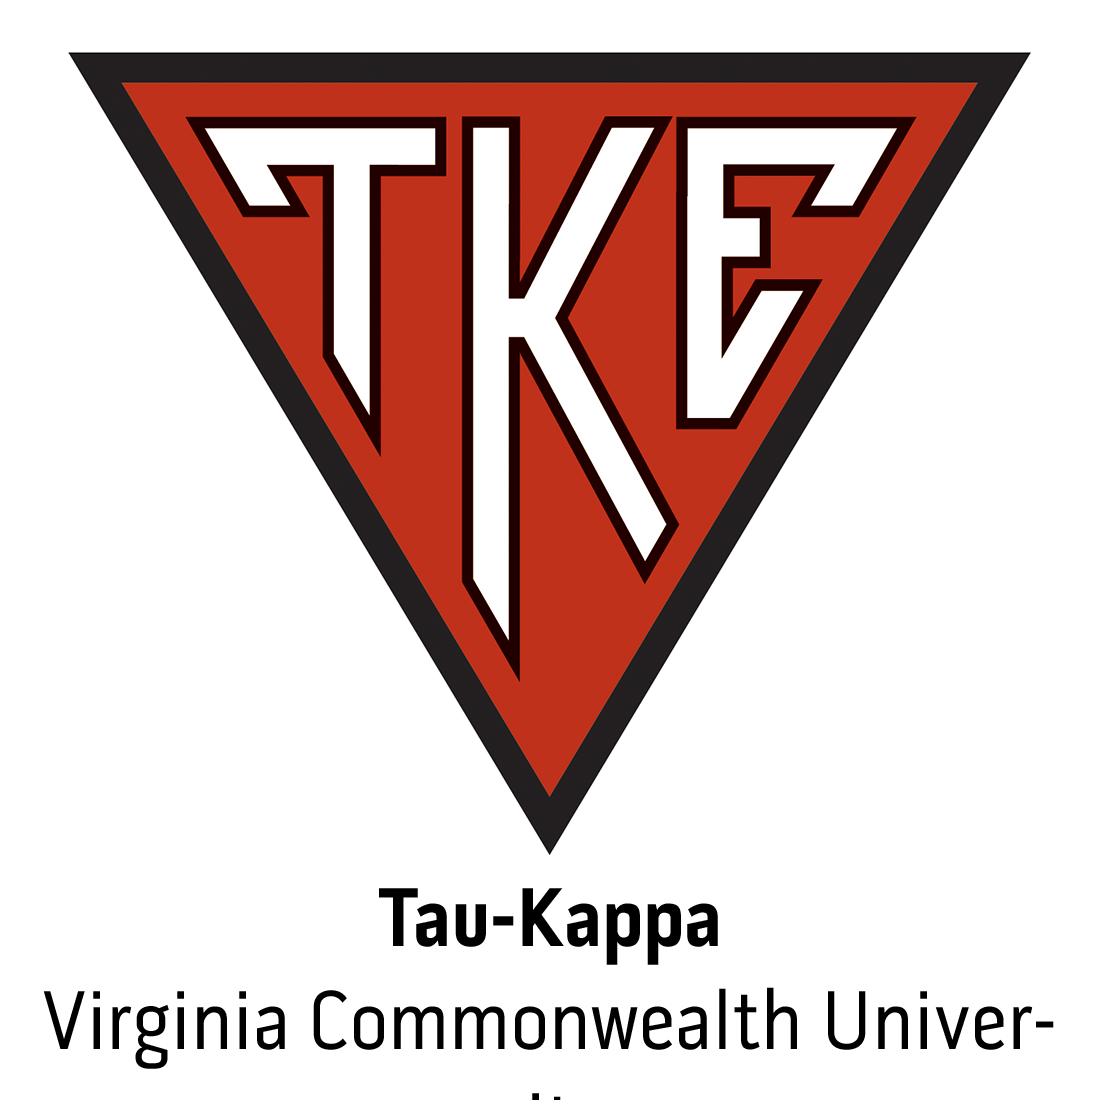 Tau-Kappa Chapter at Virginia Commonwealth University